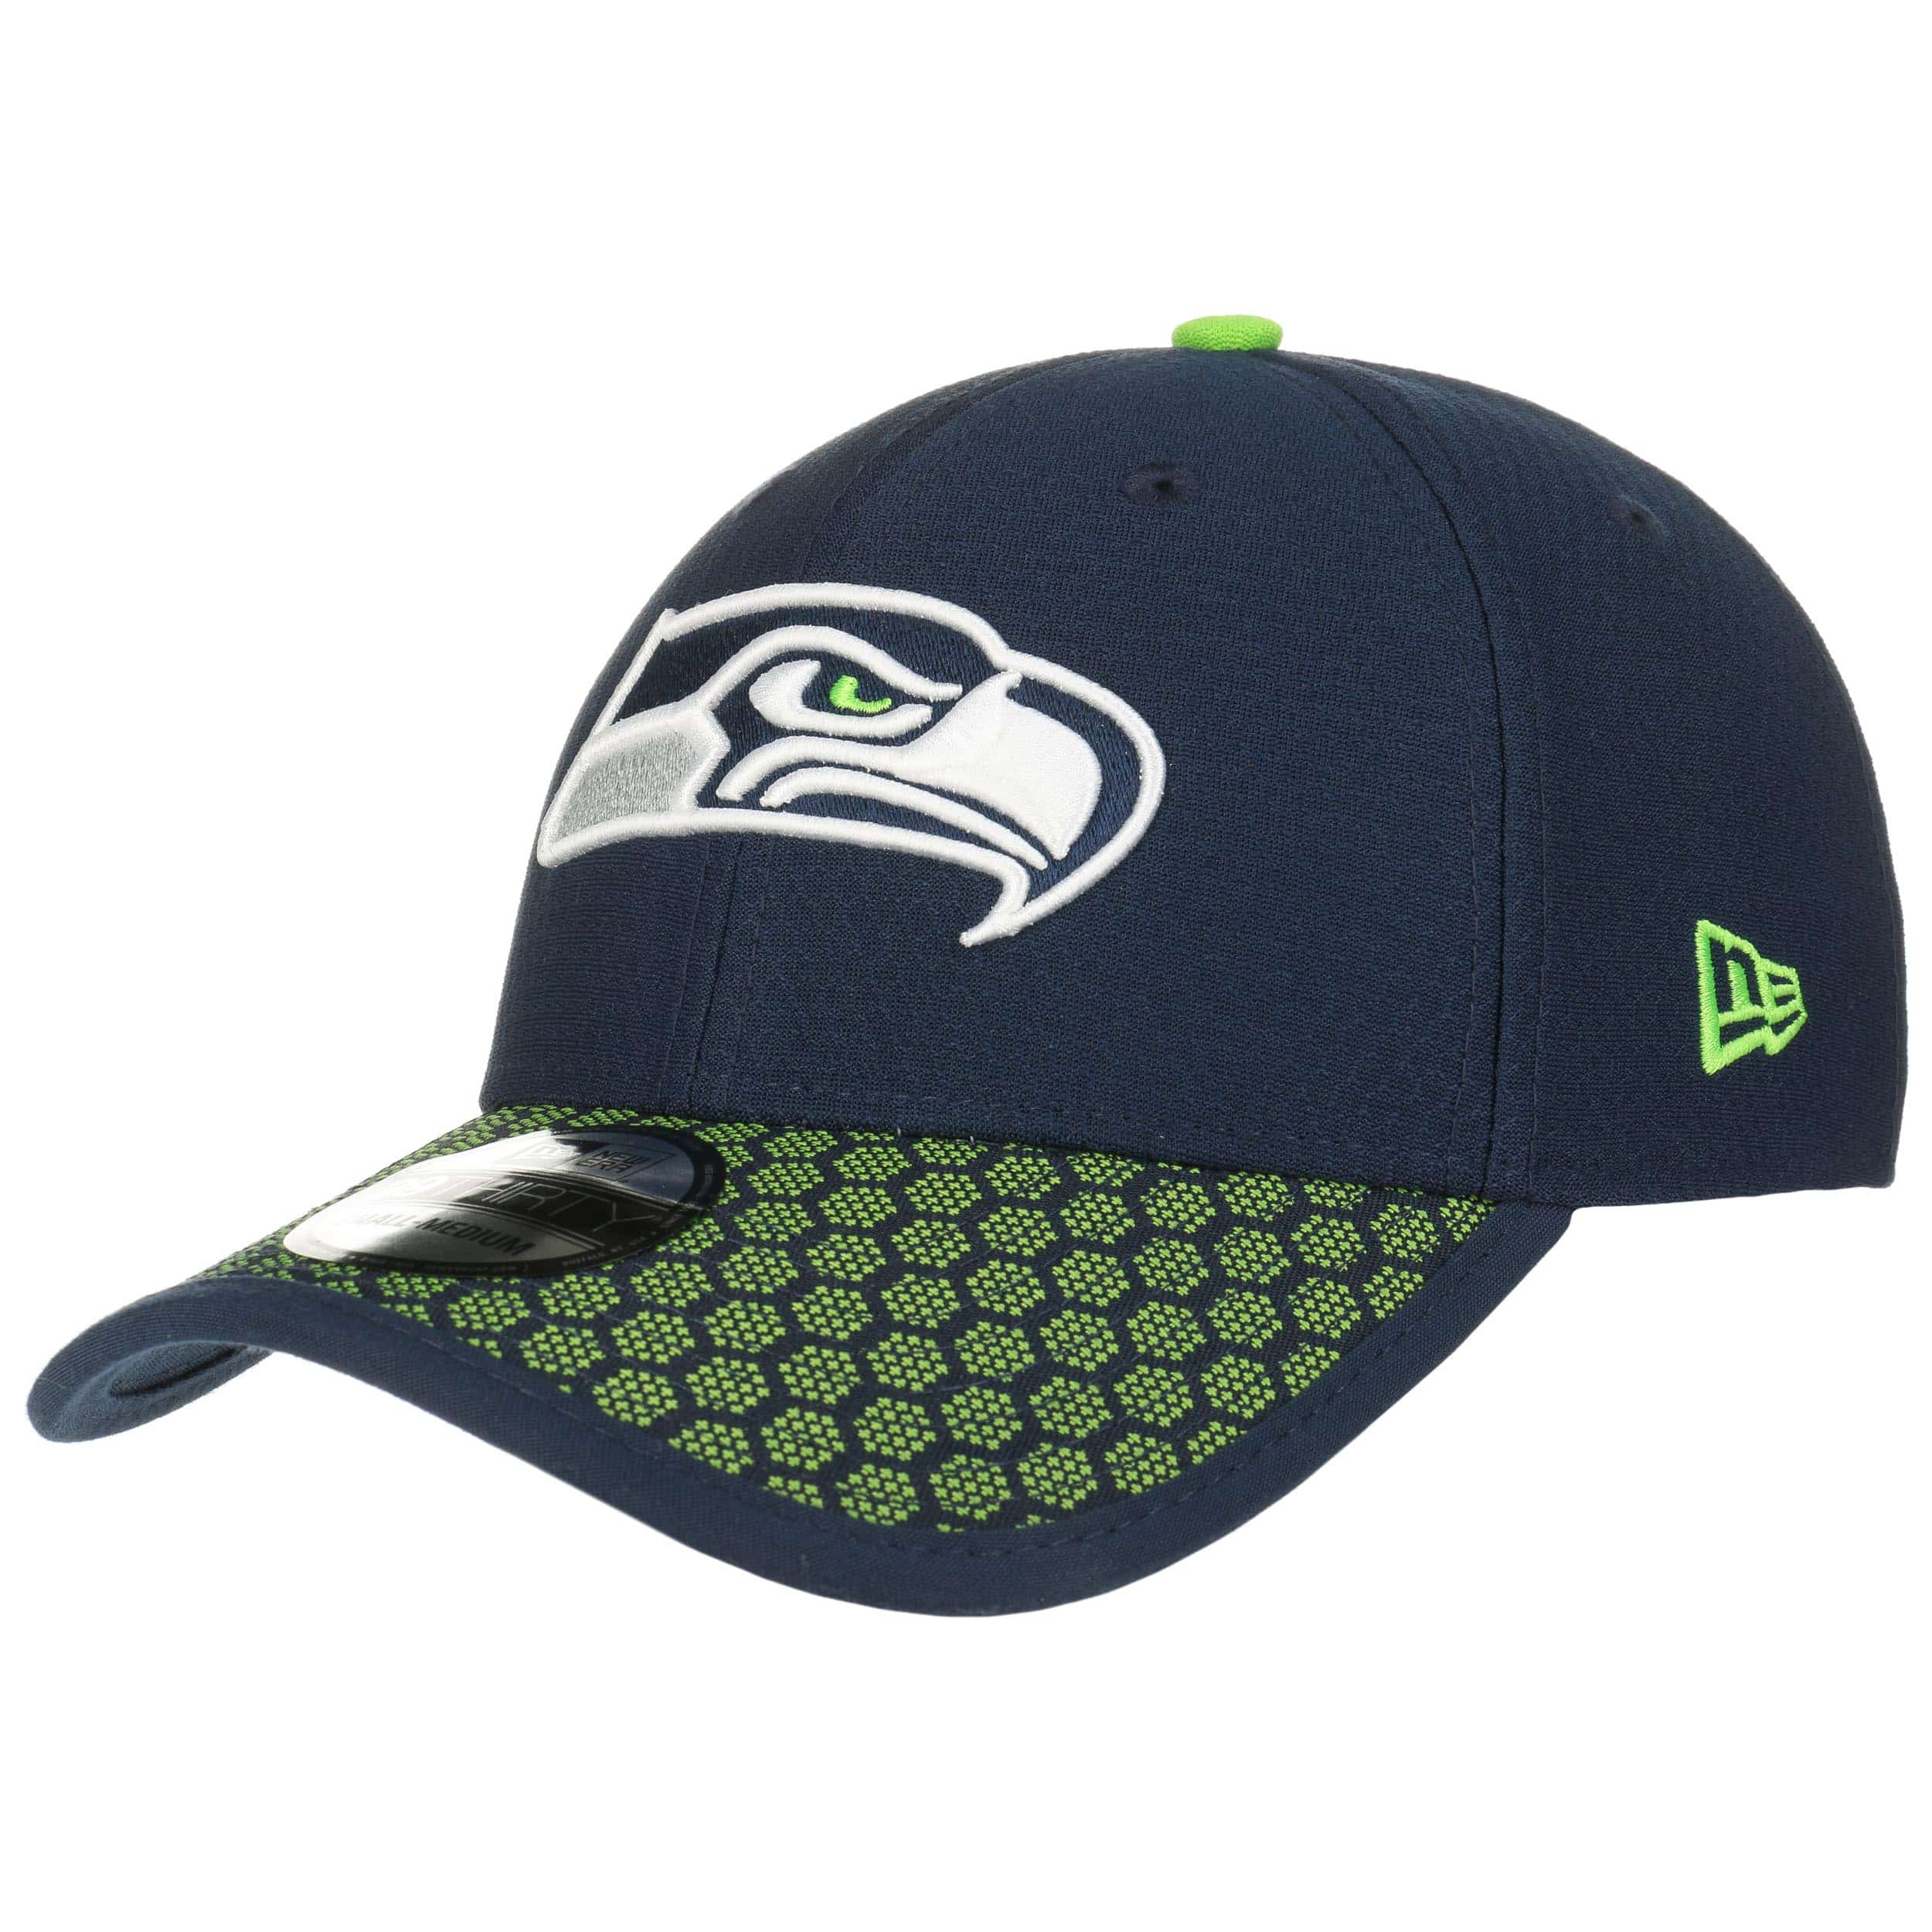 Gorra 39Thirty ONF Seahawks by New Era - Gorras - sombreroshop.es 94095848176